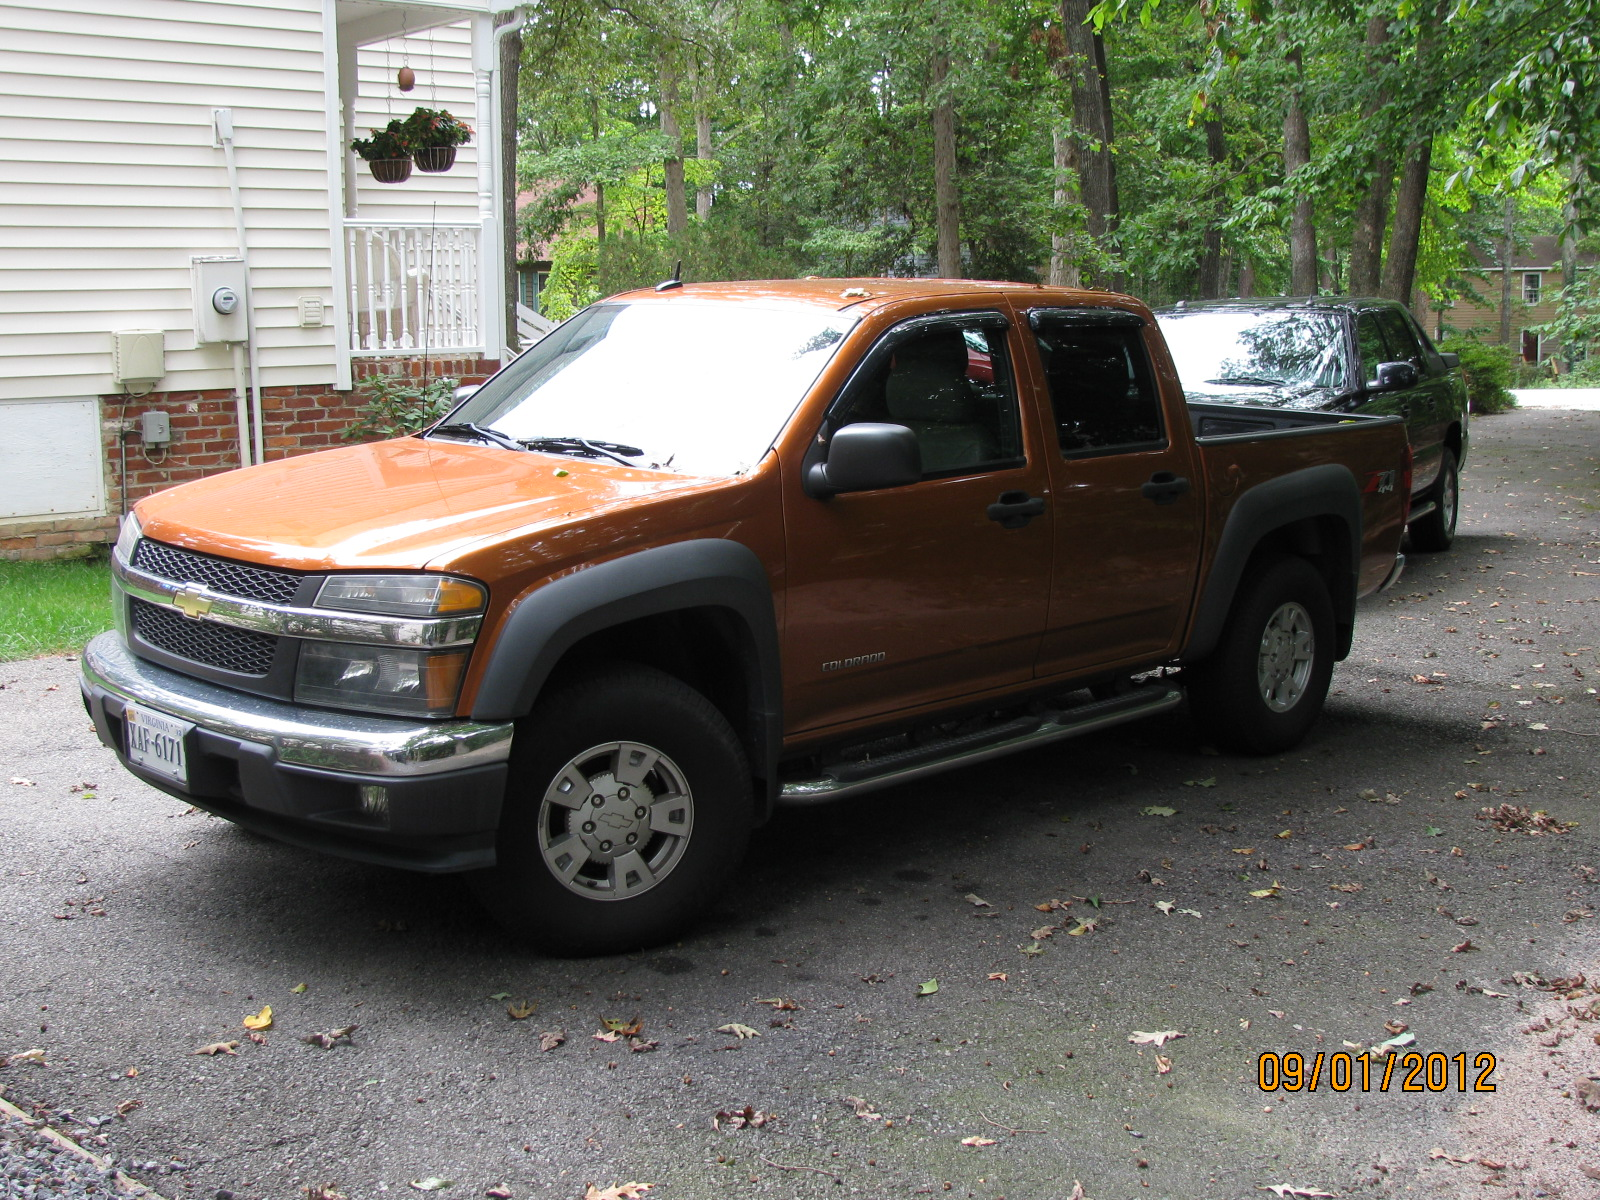 2005 chevrolet colorado 4 dr z71 ls base 4wd crew cab sb picture. Cars Review. Best American Auto & Cars Review